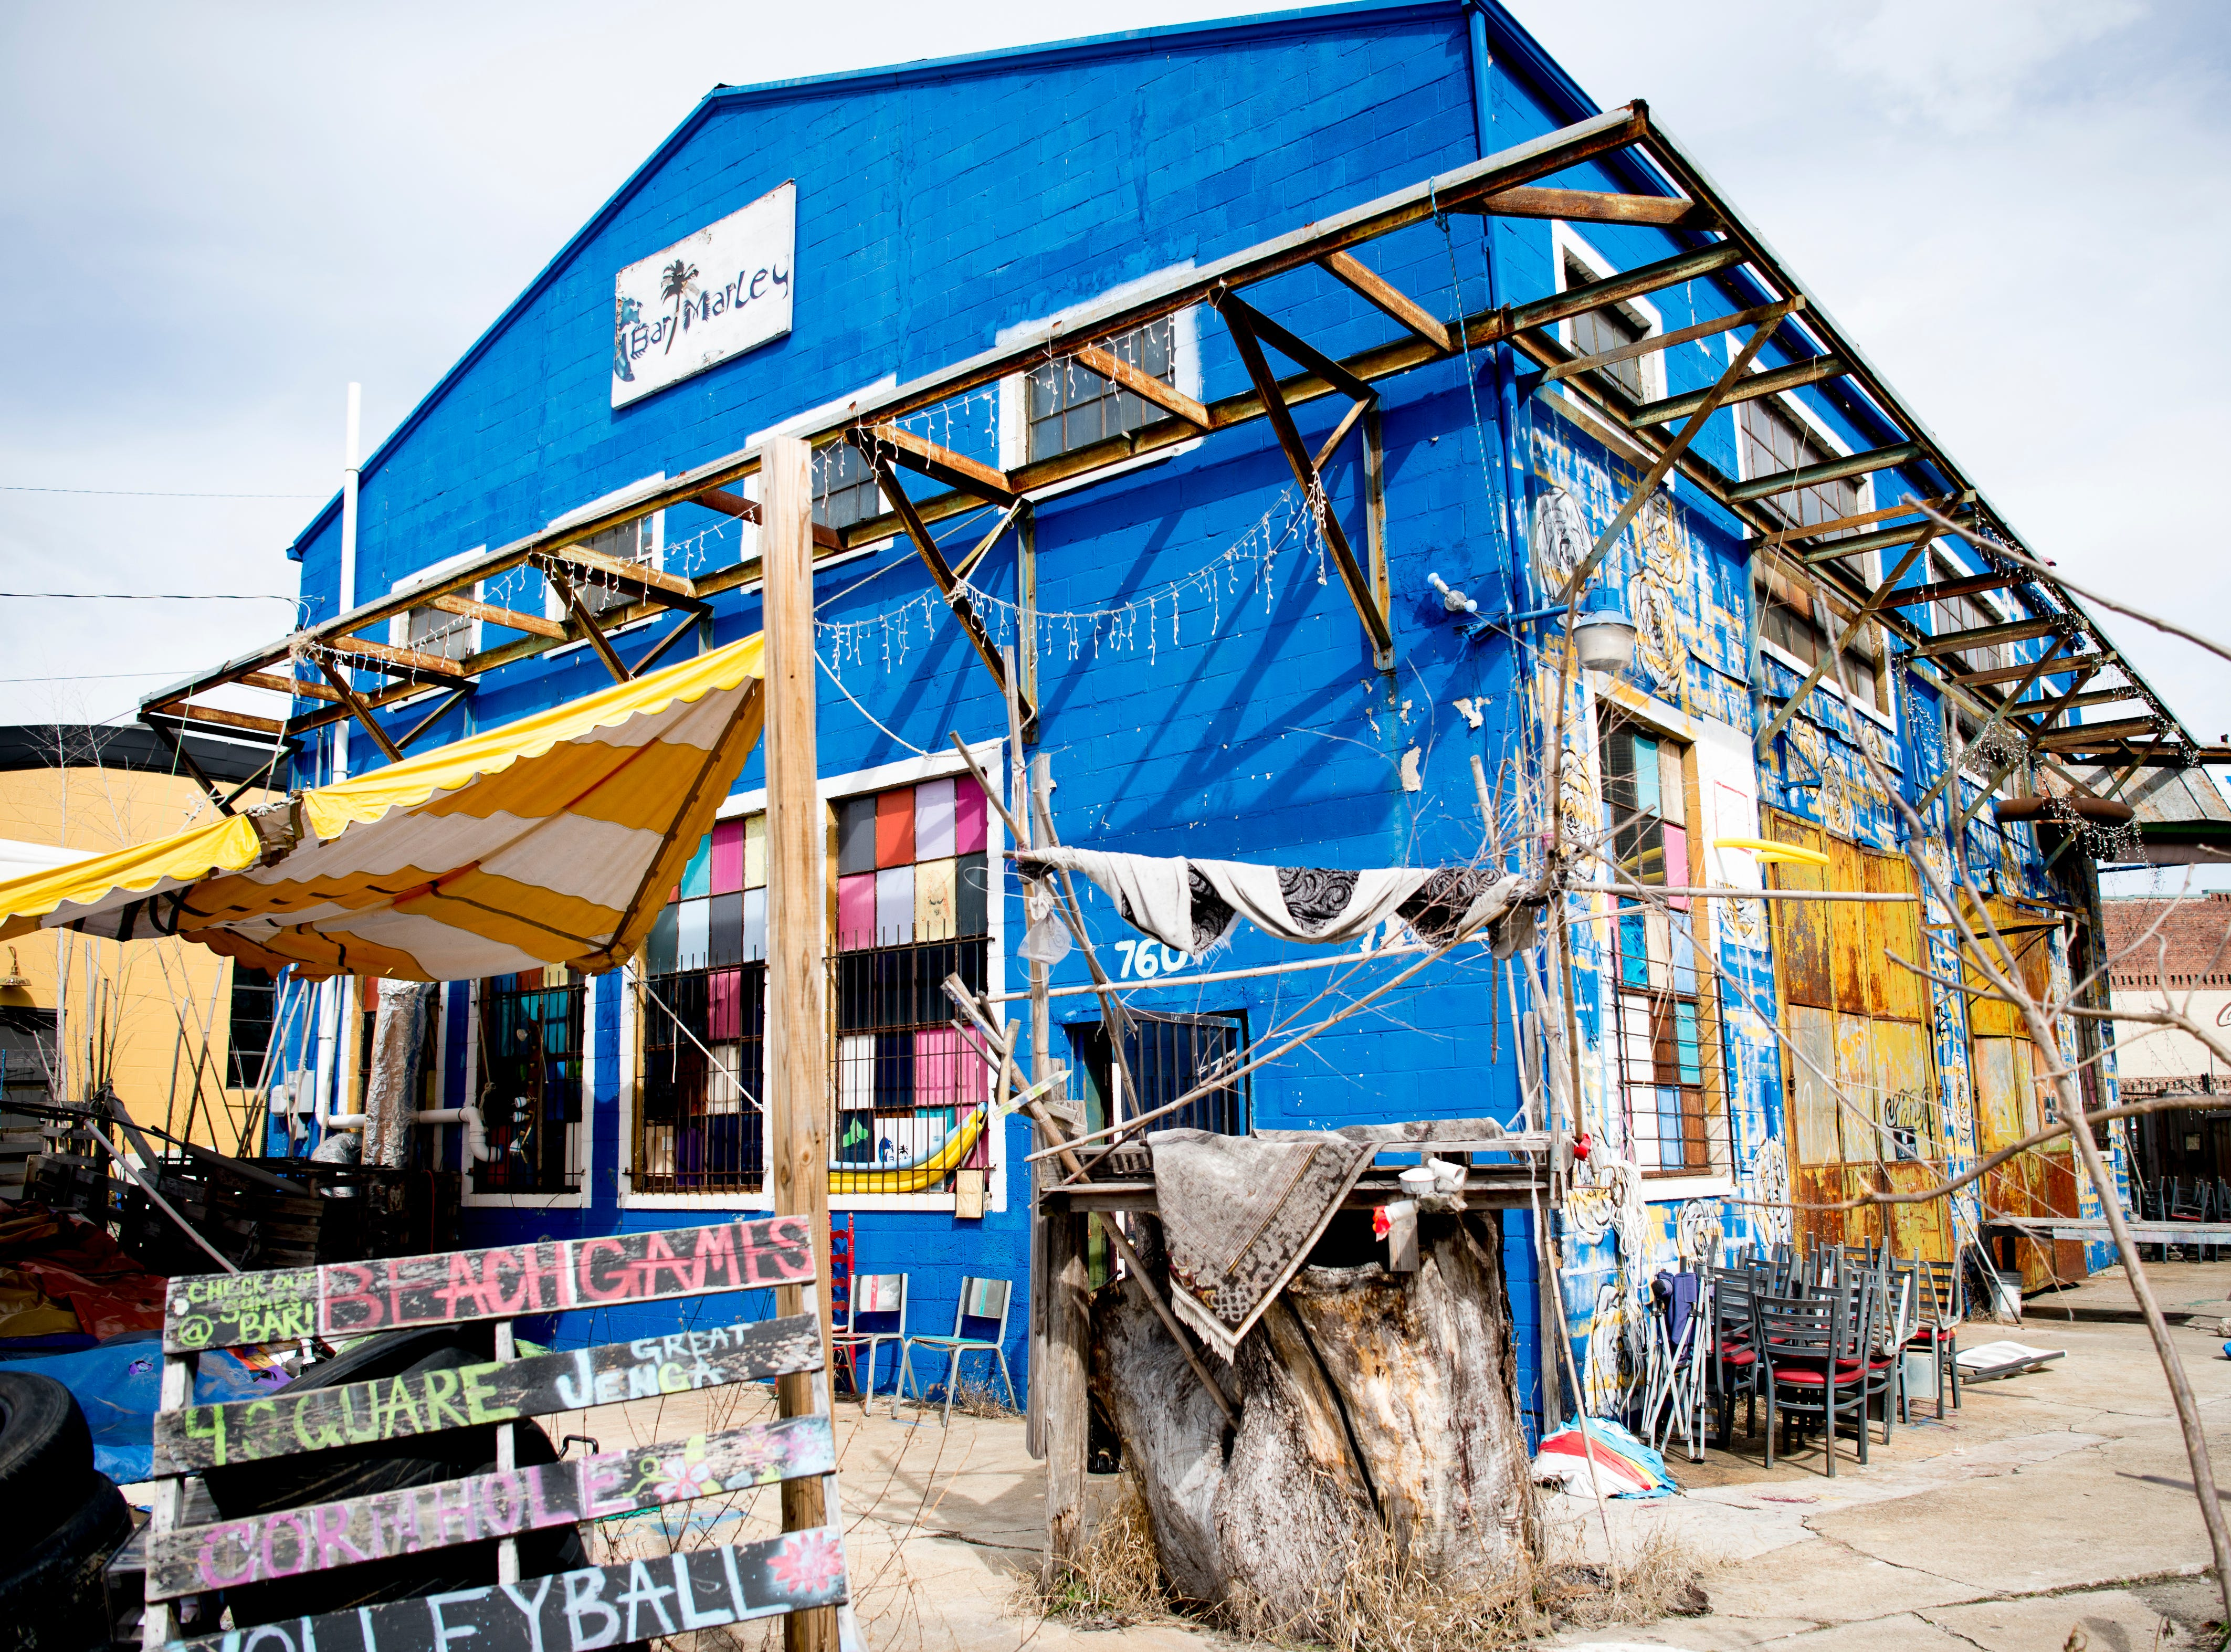 The exterior of Bar Marley in Knoxville, Tennessee on Thursday, February 14, 2019. The Caribbean-themed Bar Marley is facing possible acquisition and condemnation by KCDC due to code violations.